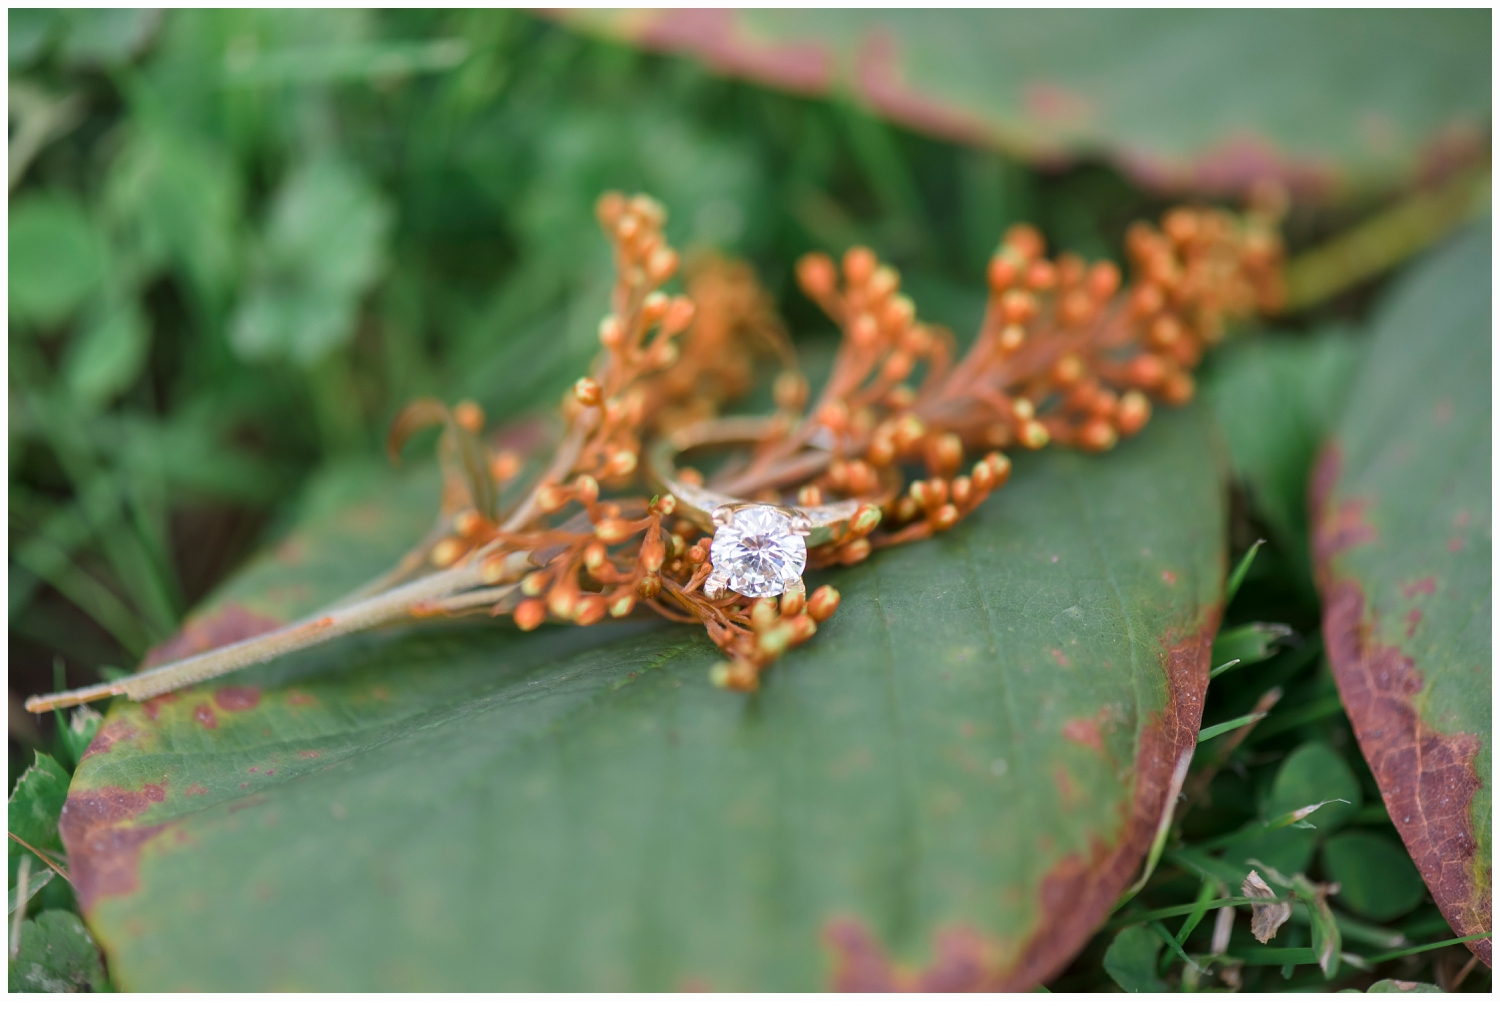 engagement ring on a pretty leaf